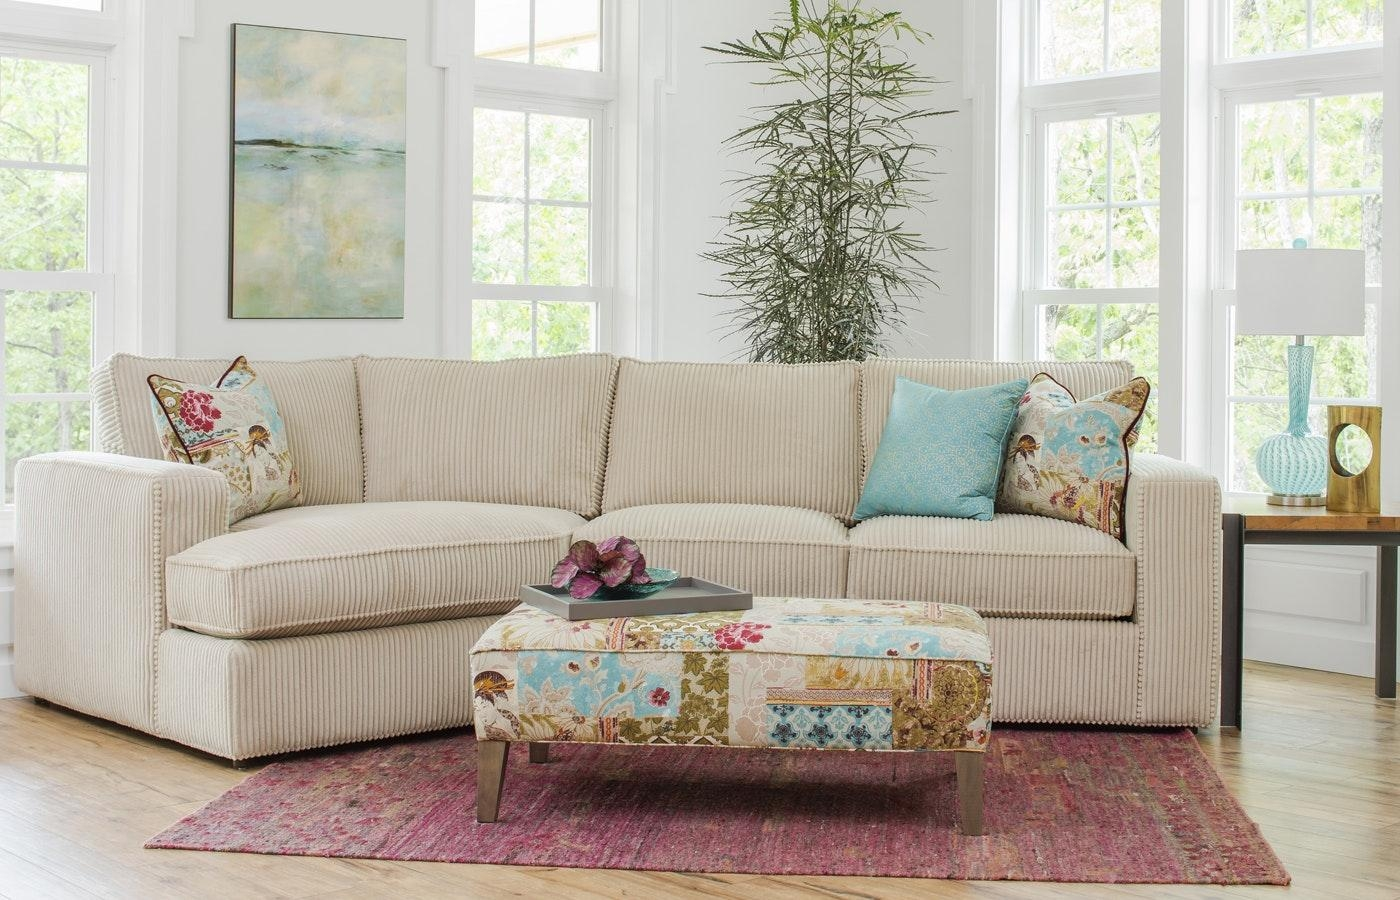 norwalk sofa and chair company grand furniture leather 20 top chairs ideas